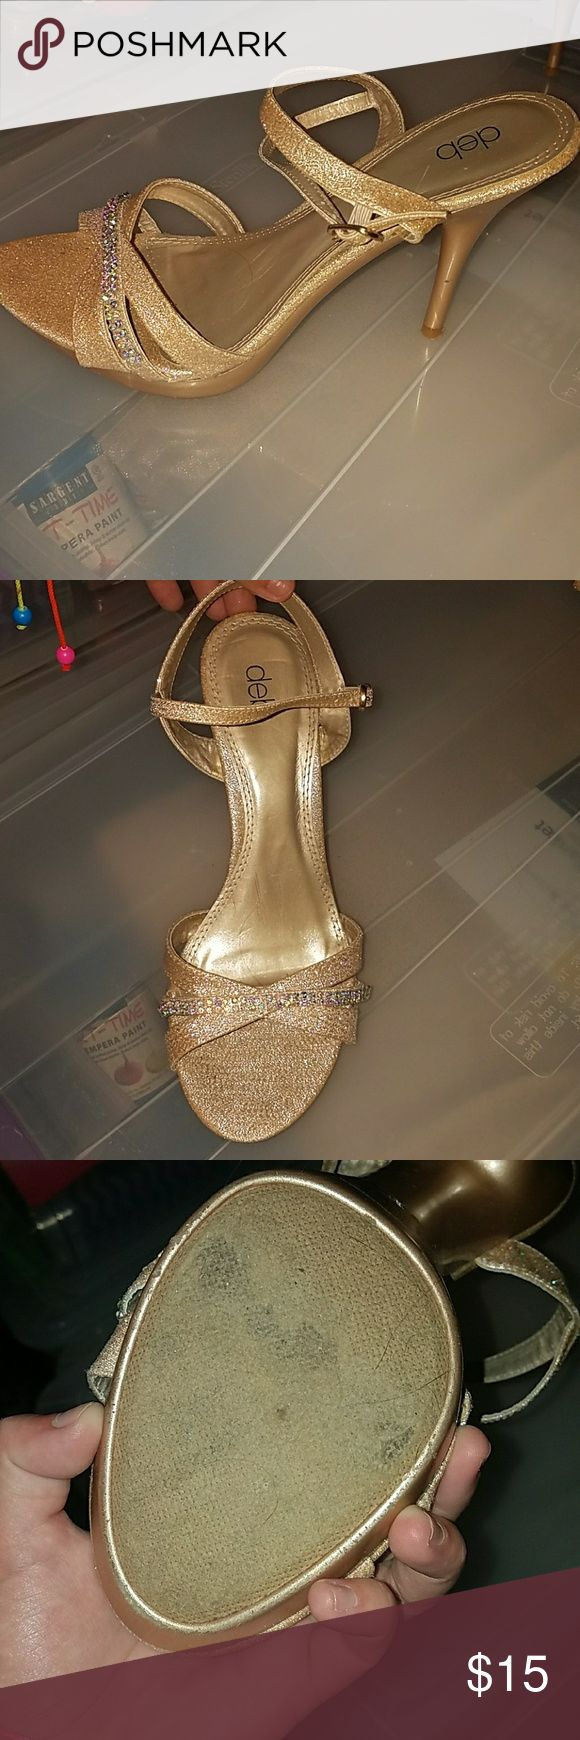 Gold glitter heels Worn once for homecoming, some wear and tear on the bottom as pictured. Deb Shoes